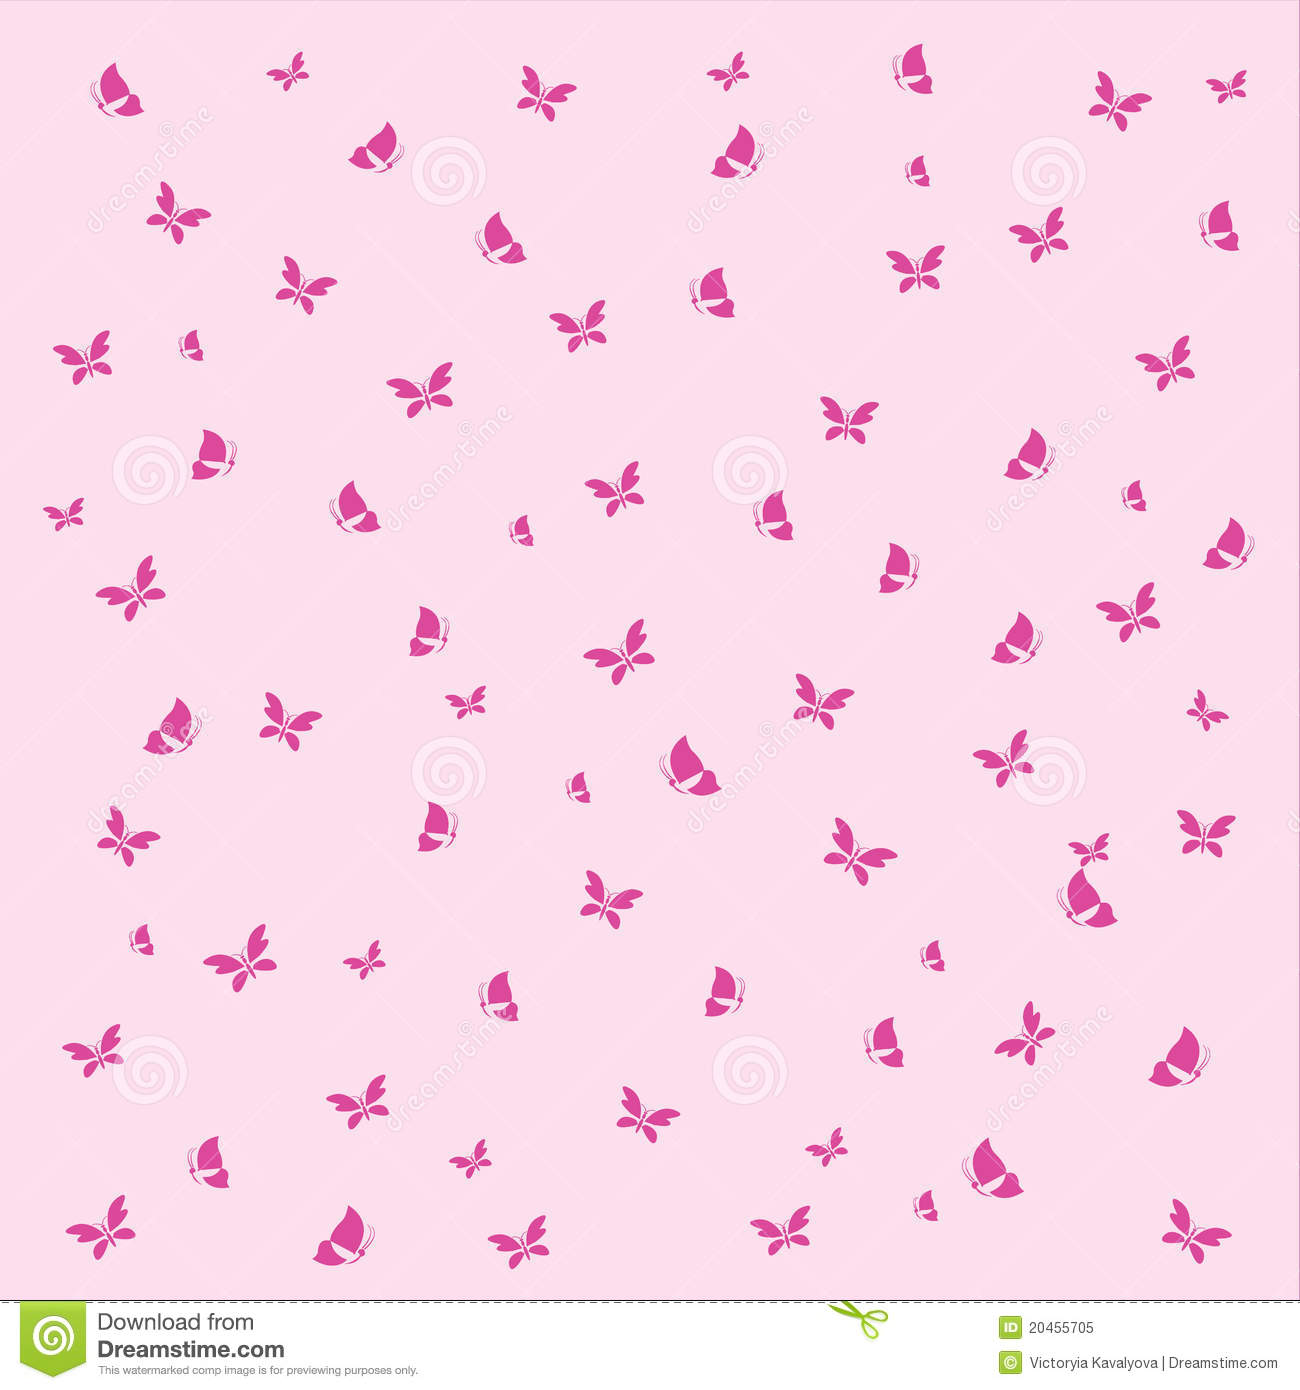 Pink butterfly vector background hd wallpapers pink butterfly vector - Background Butterfly Illustration Pink Wallpaper